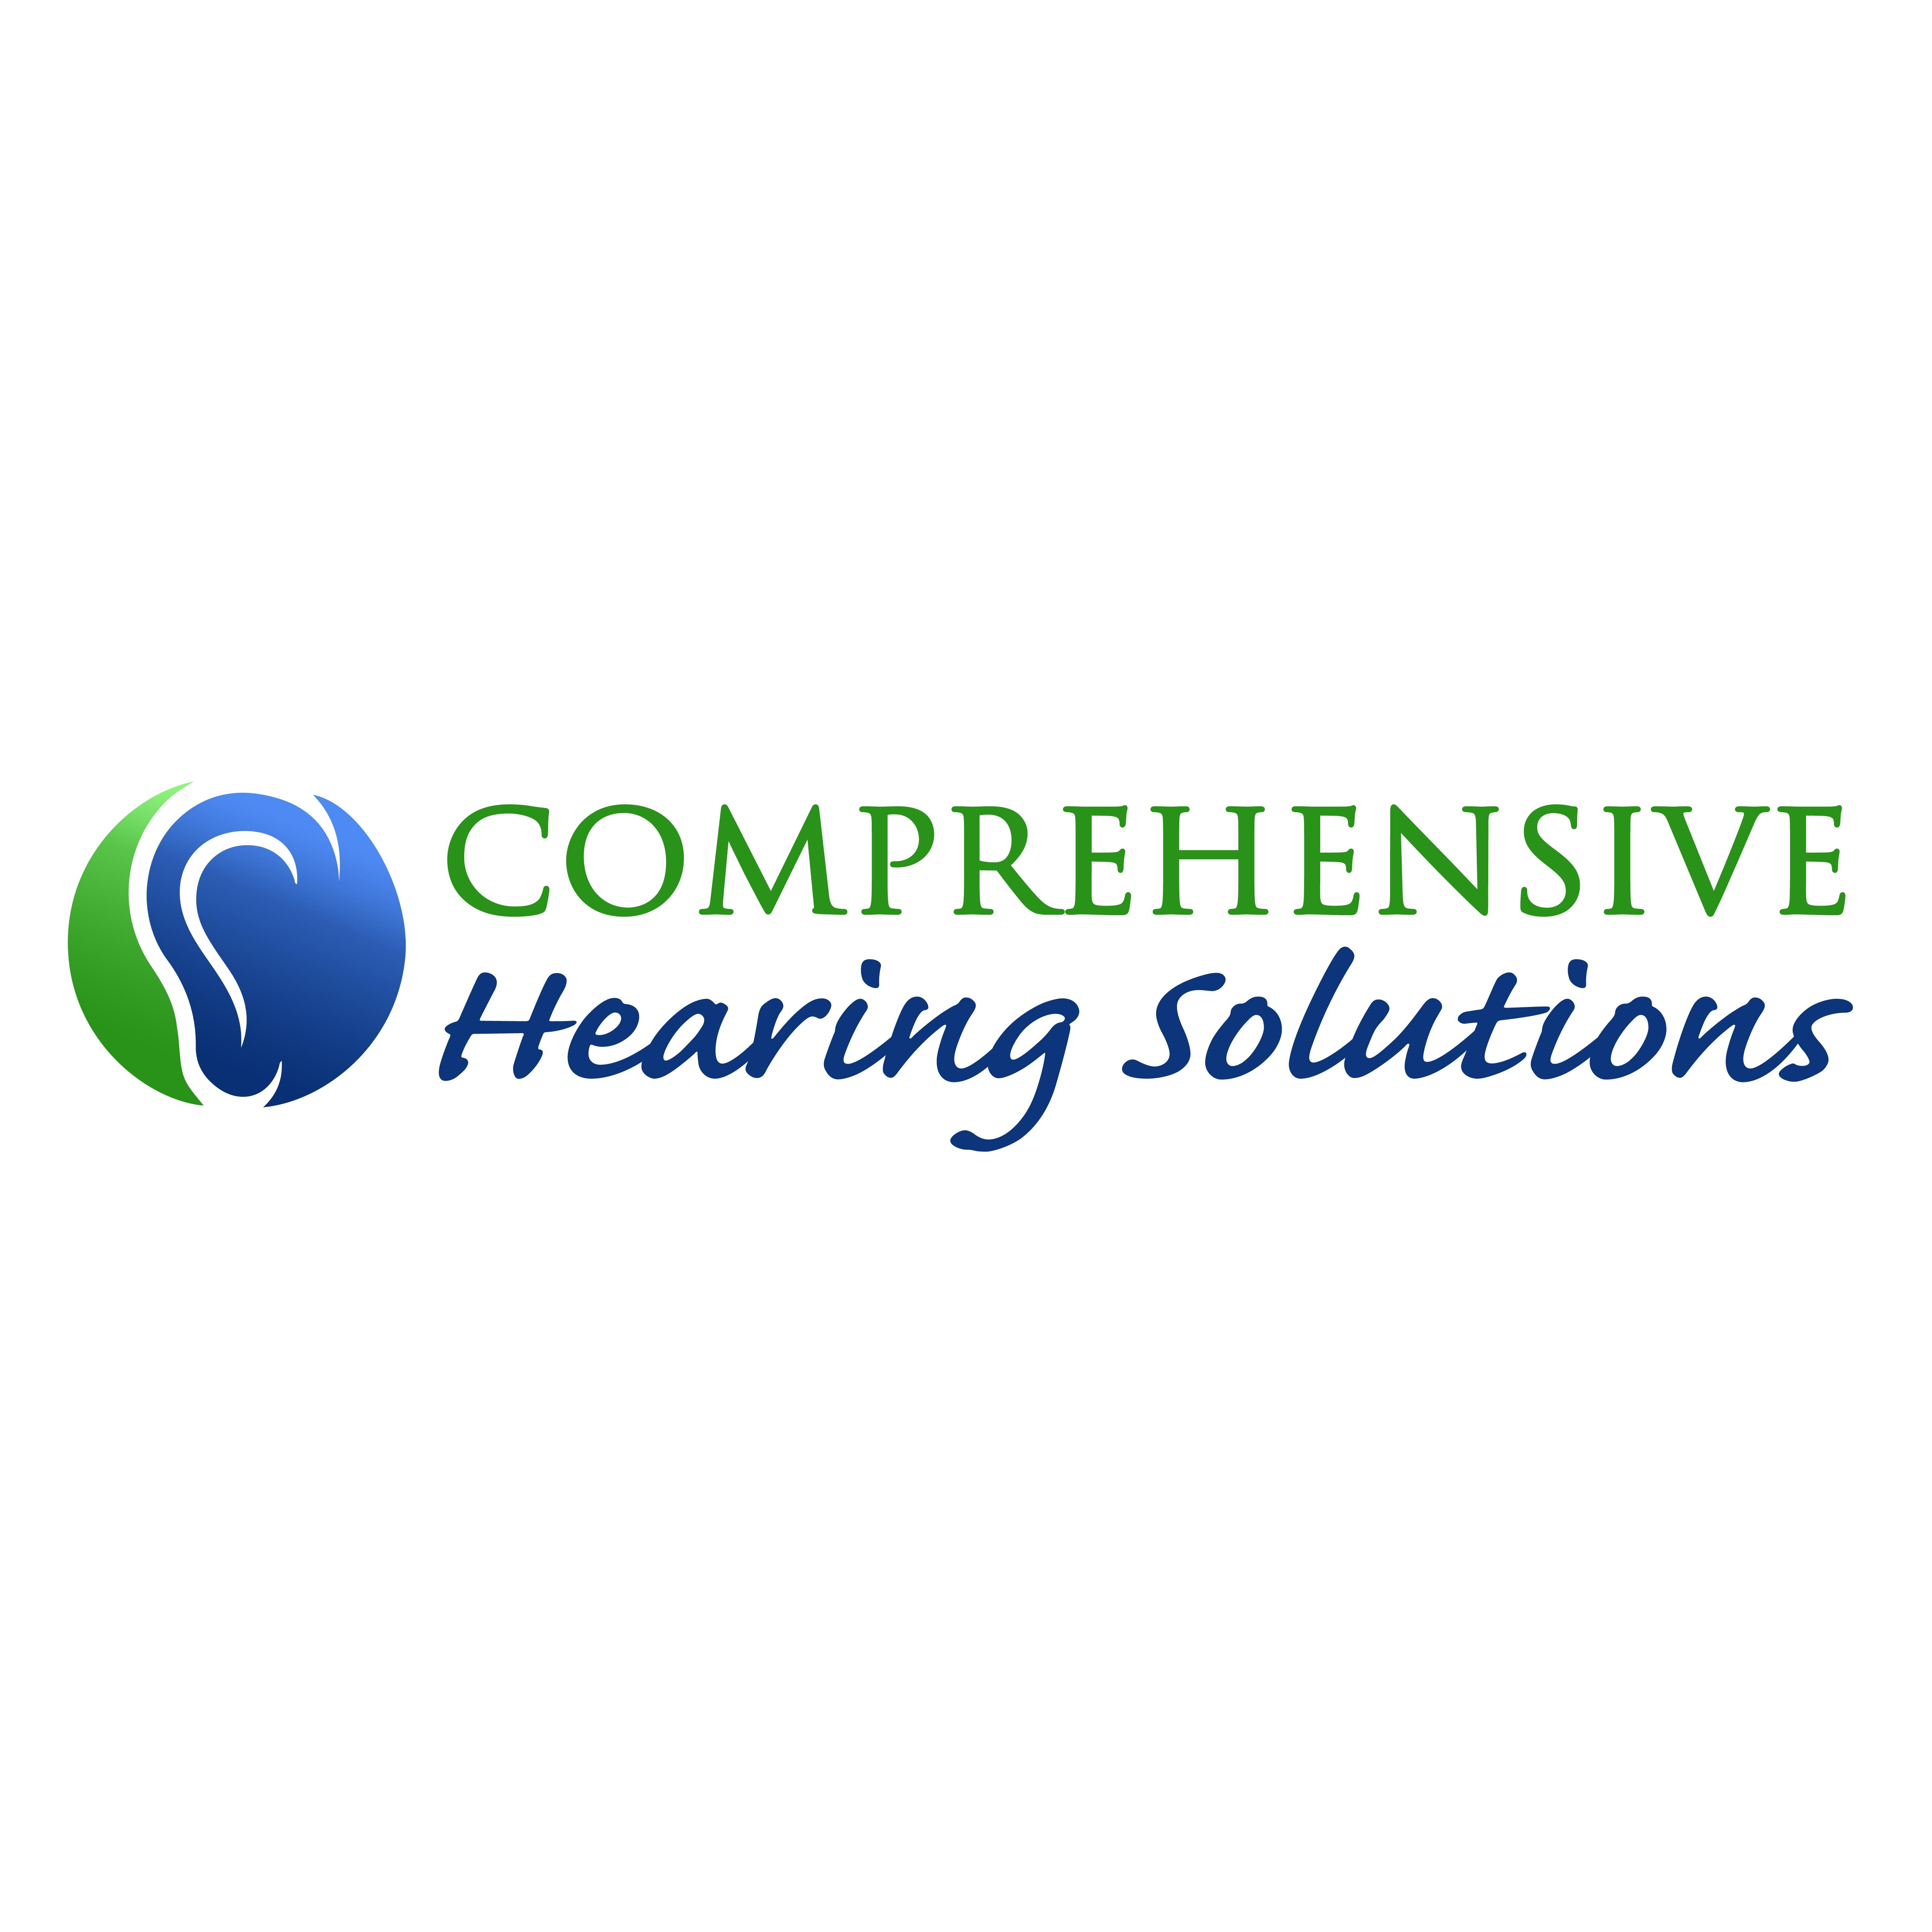 Comprehensive Hearing Solutions